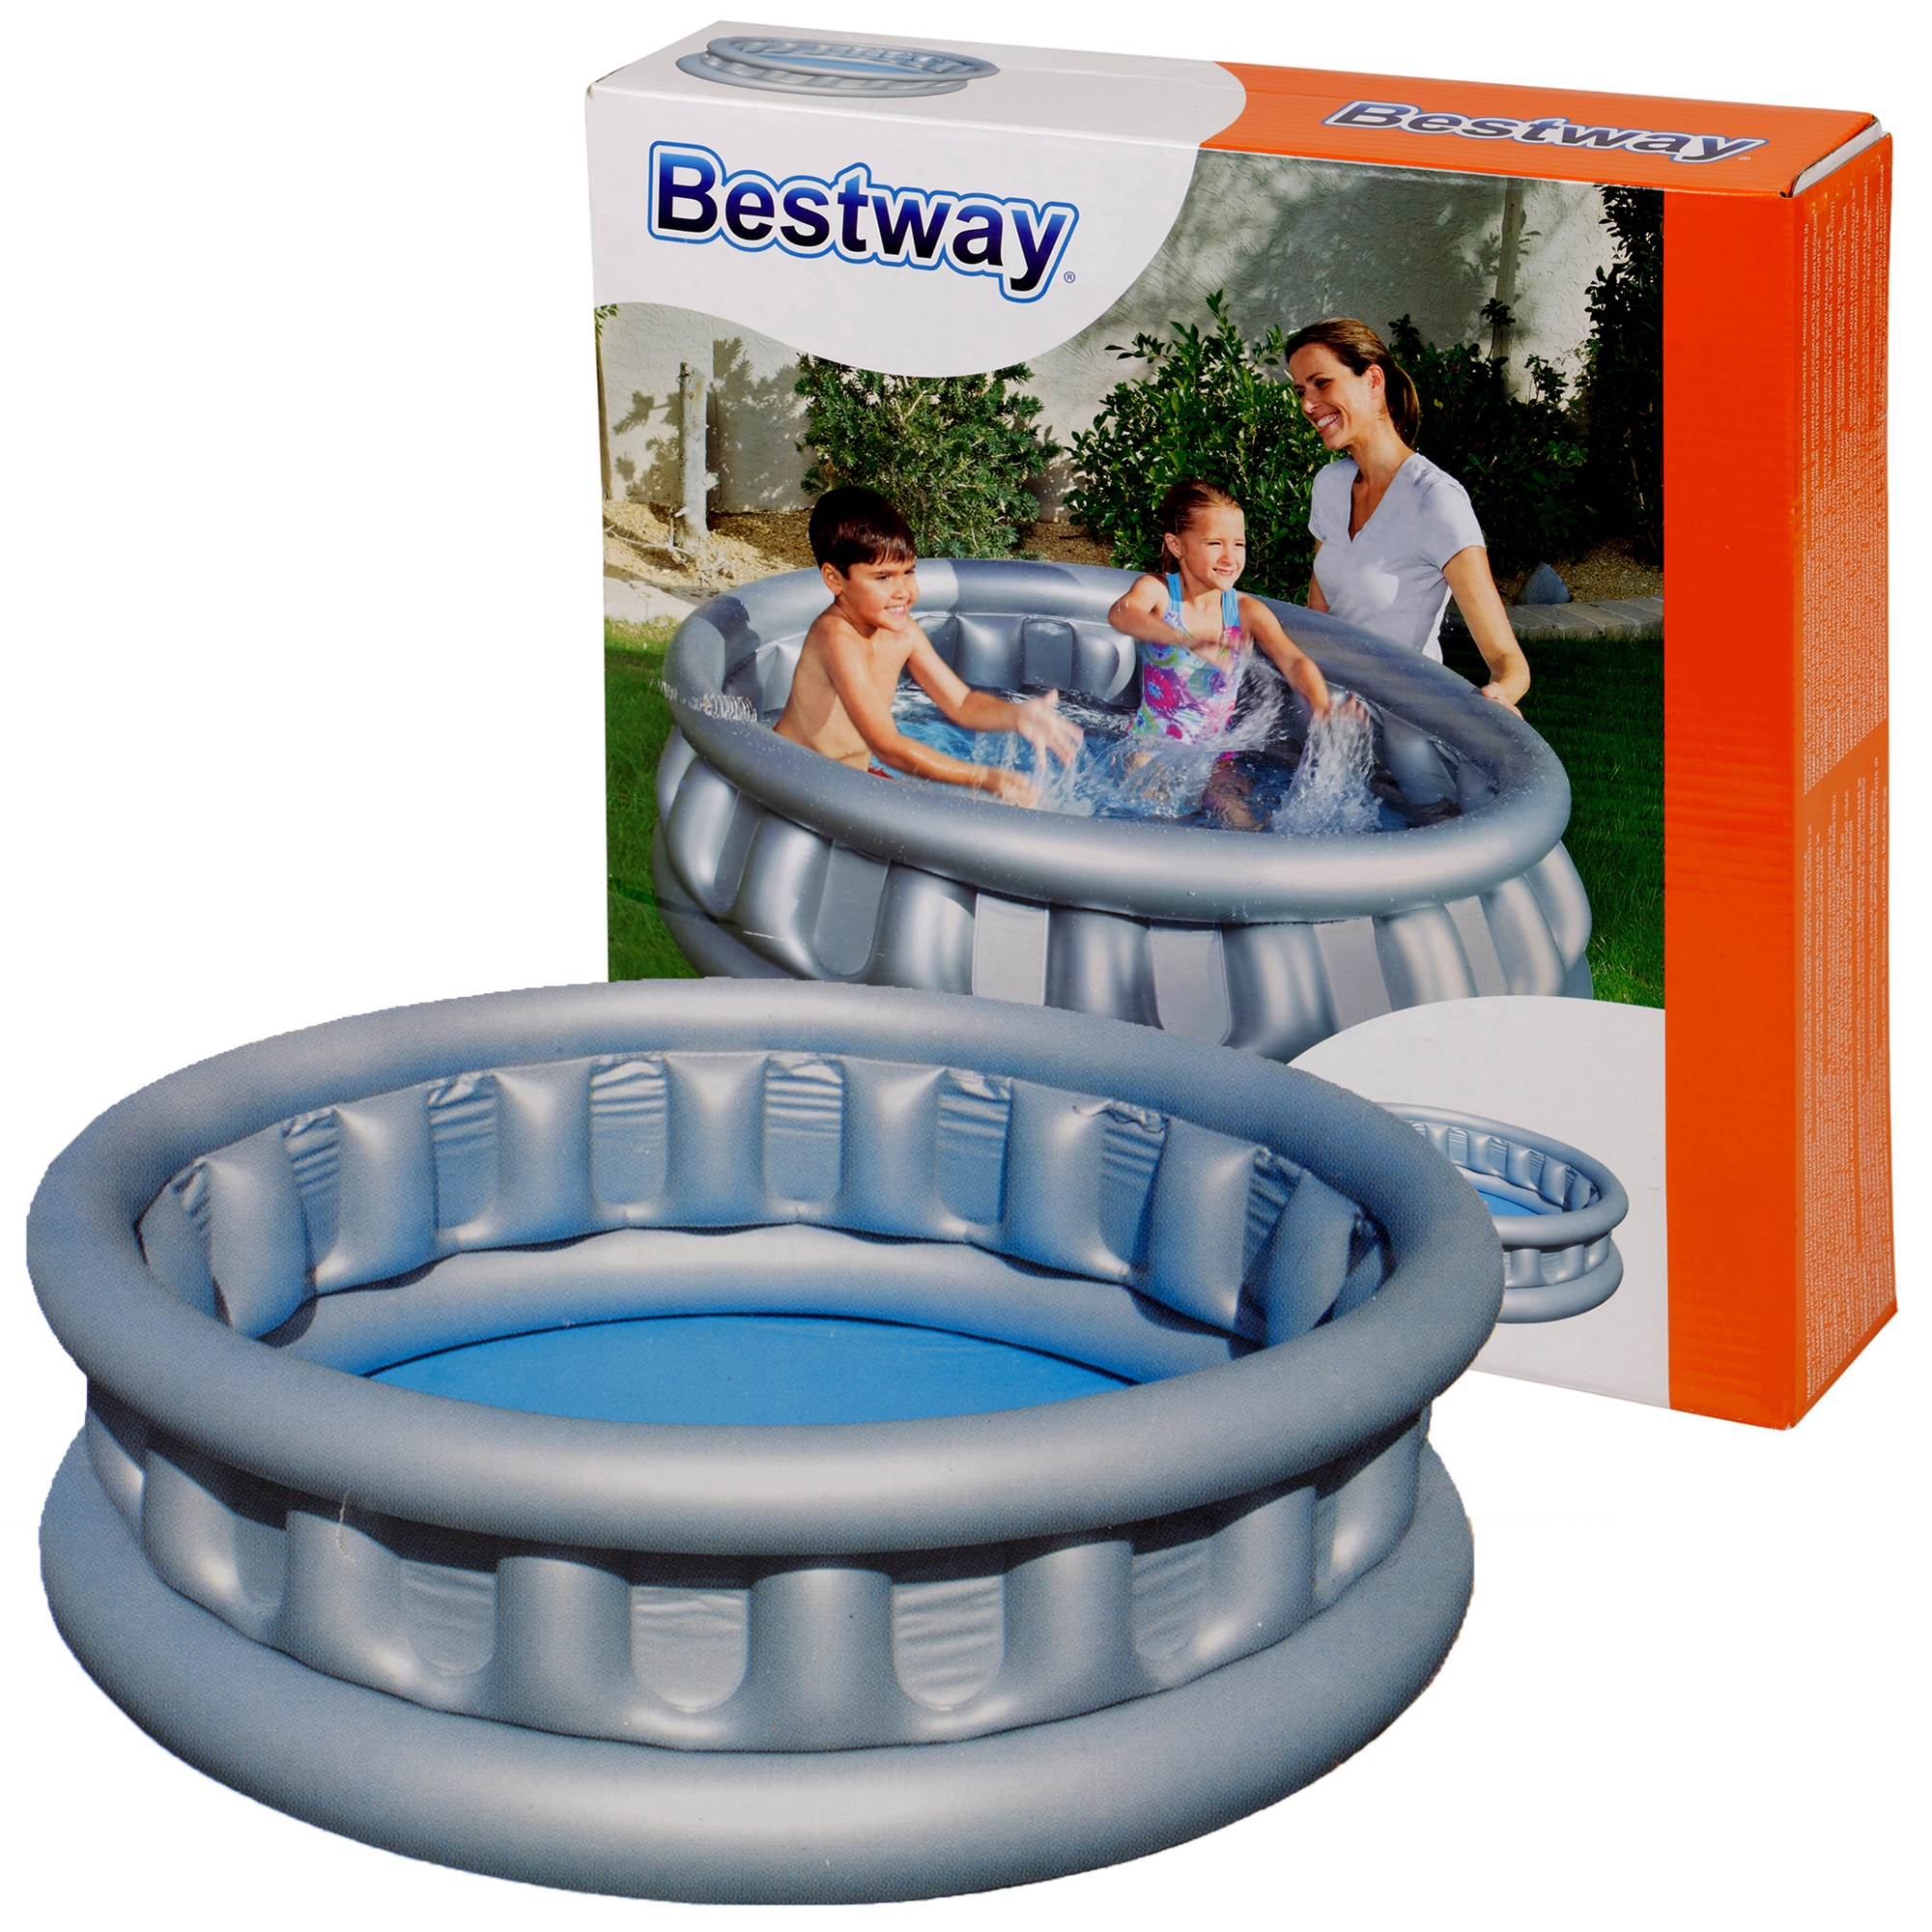 bestway riesig aufblasbar raumschiff wasser schwimm planschbecken garten kinder ebay. Black Bedroom Furniture Sets. Home Design Ideas